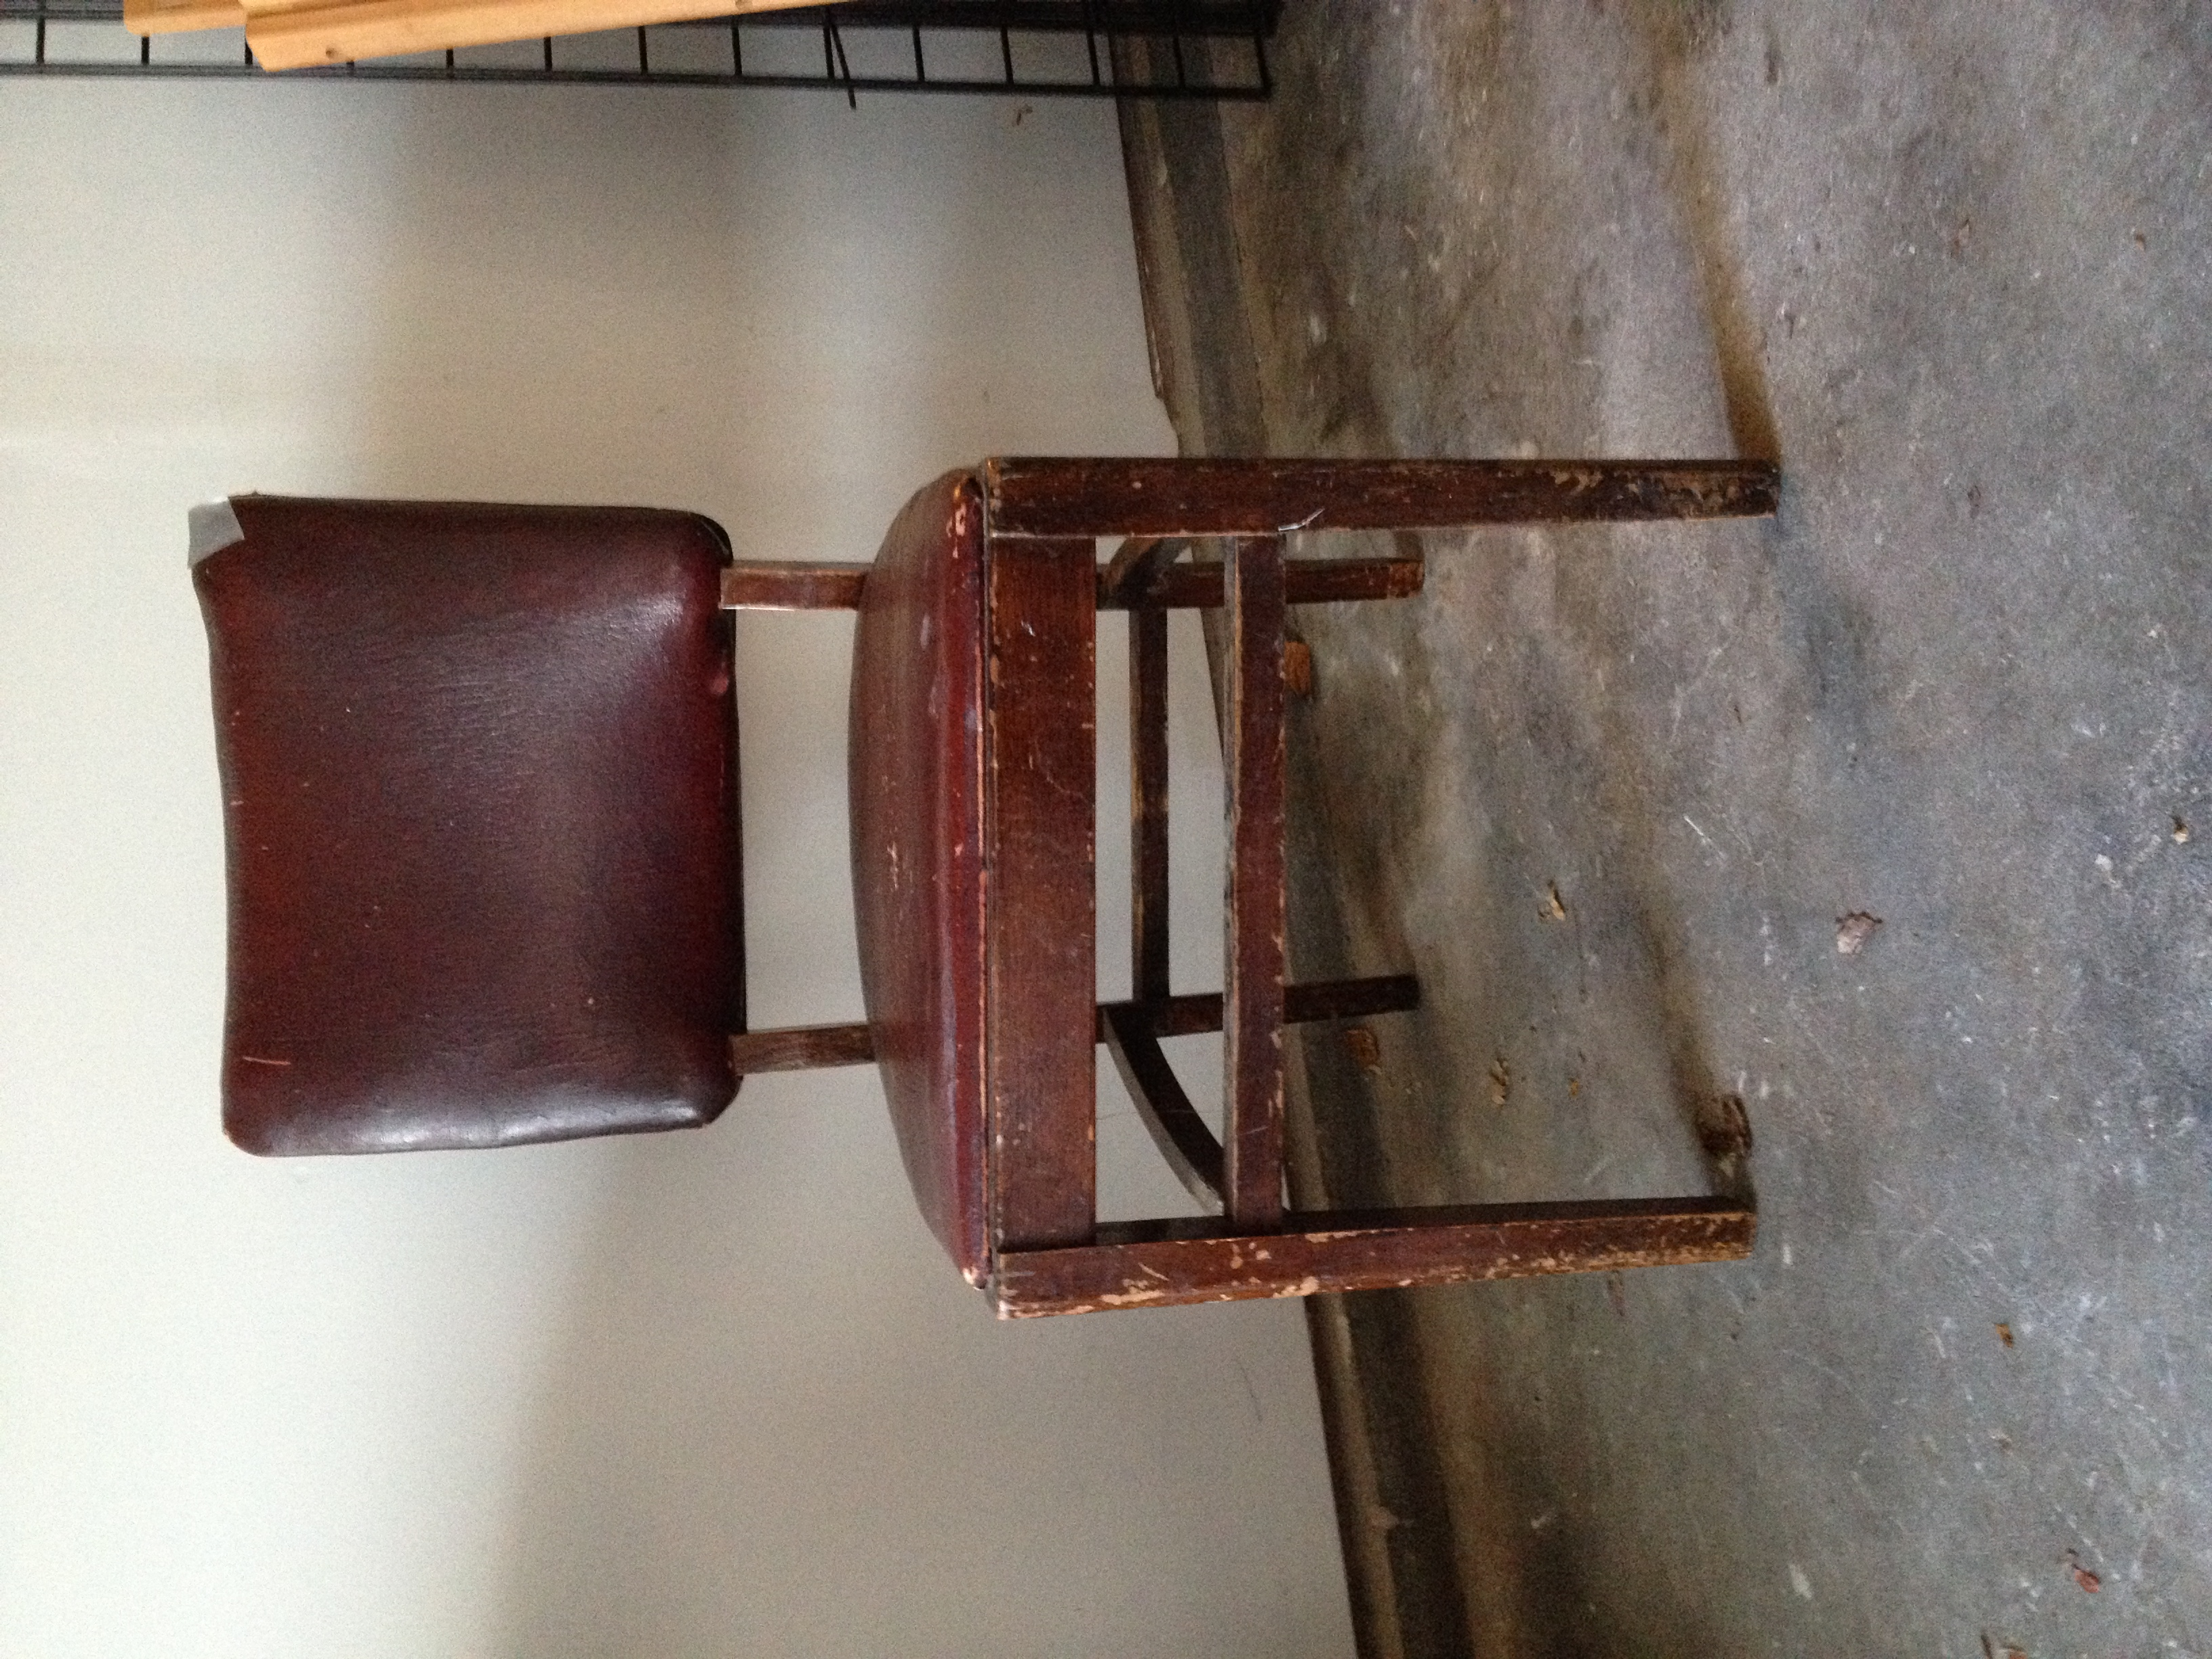 Heres' how the chair looked when I picked it up in November.